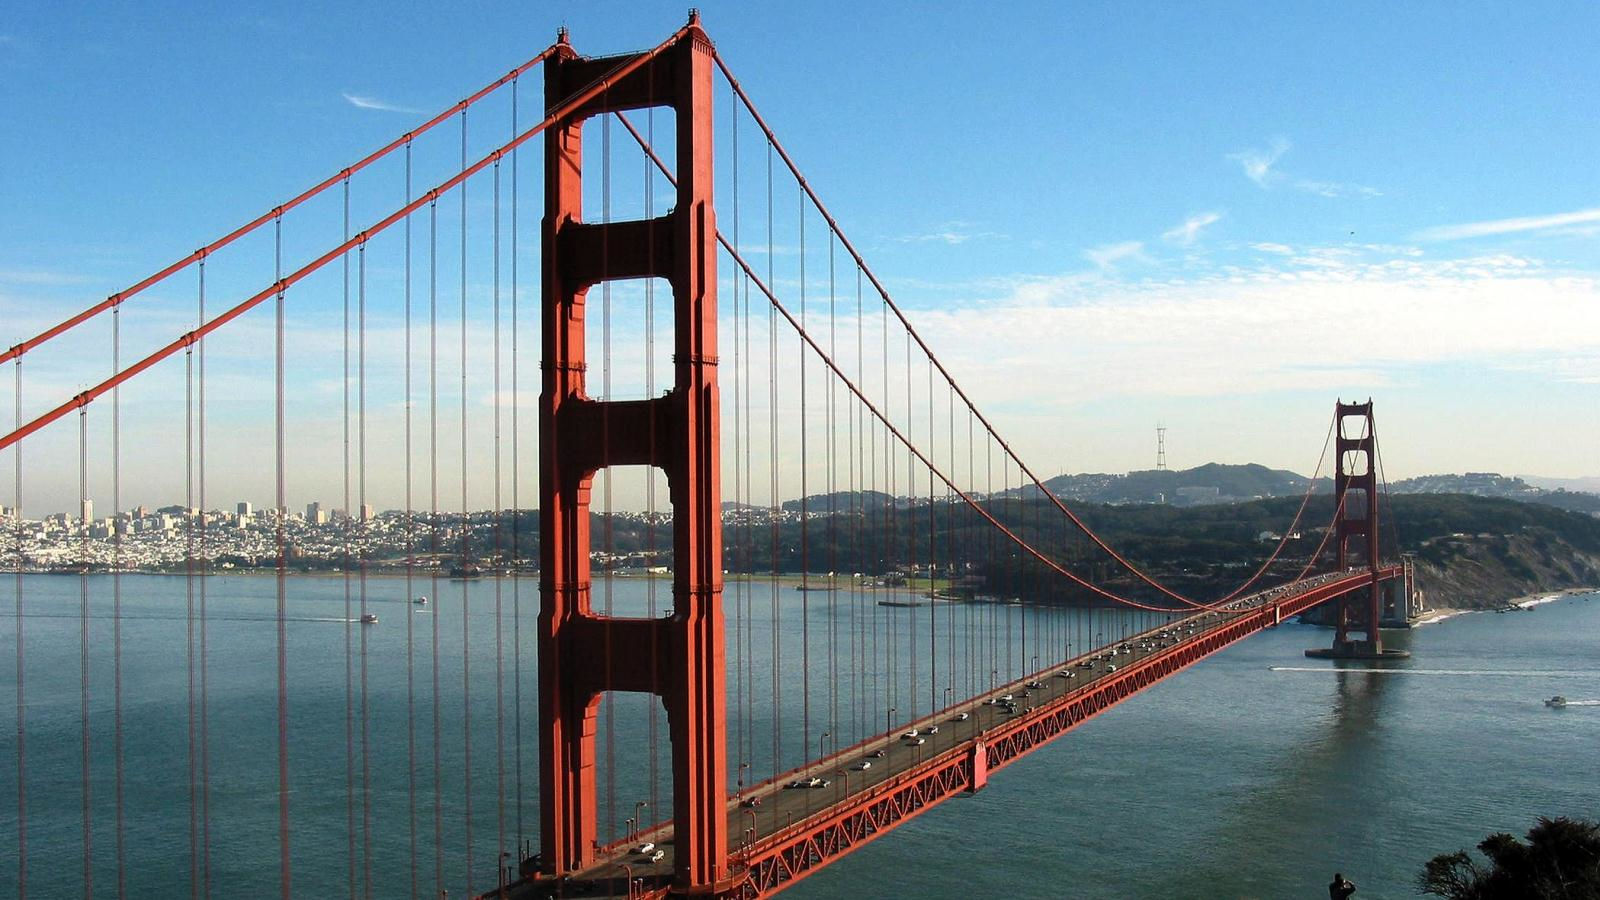 The St. Regis San Francisco hotel is located within a few miles of the iconic Golden Gate Bridge.